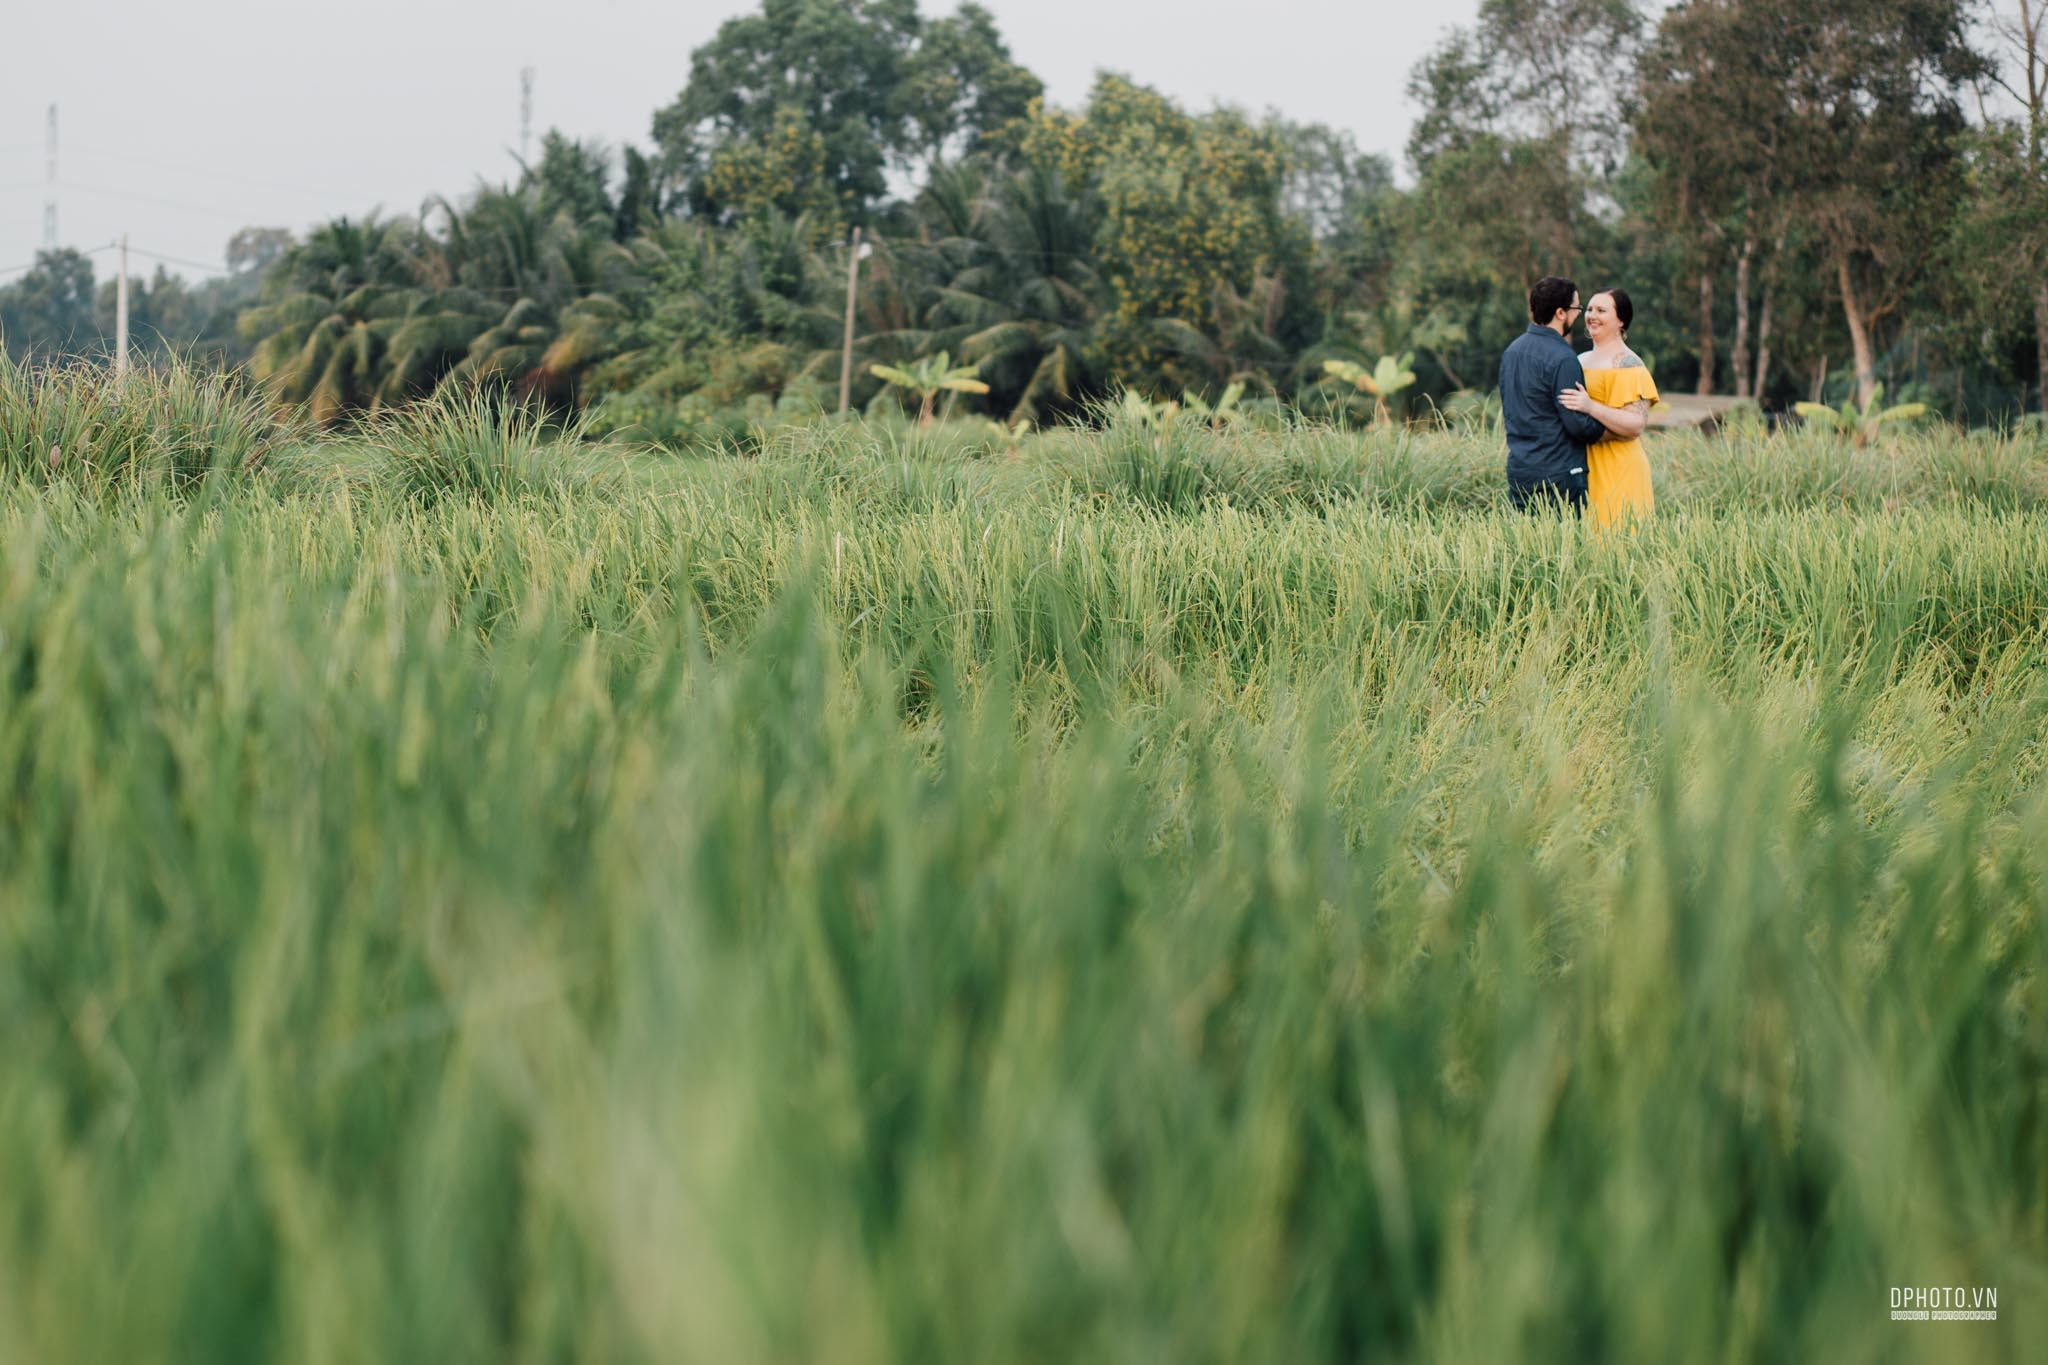 engagement_photo_in_sai_gon_ho_chi_minh_viet_nam91